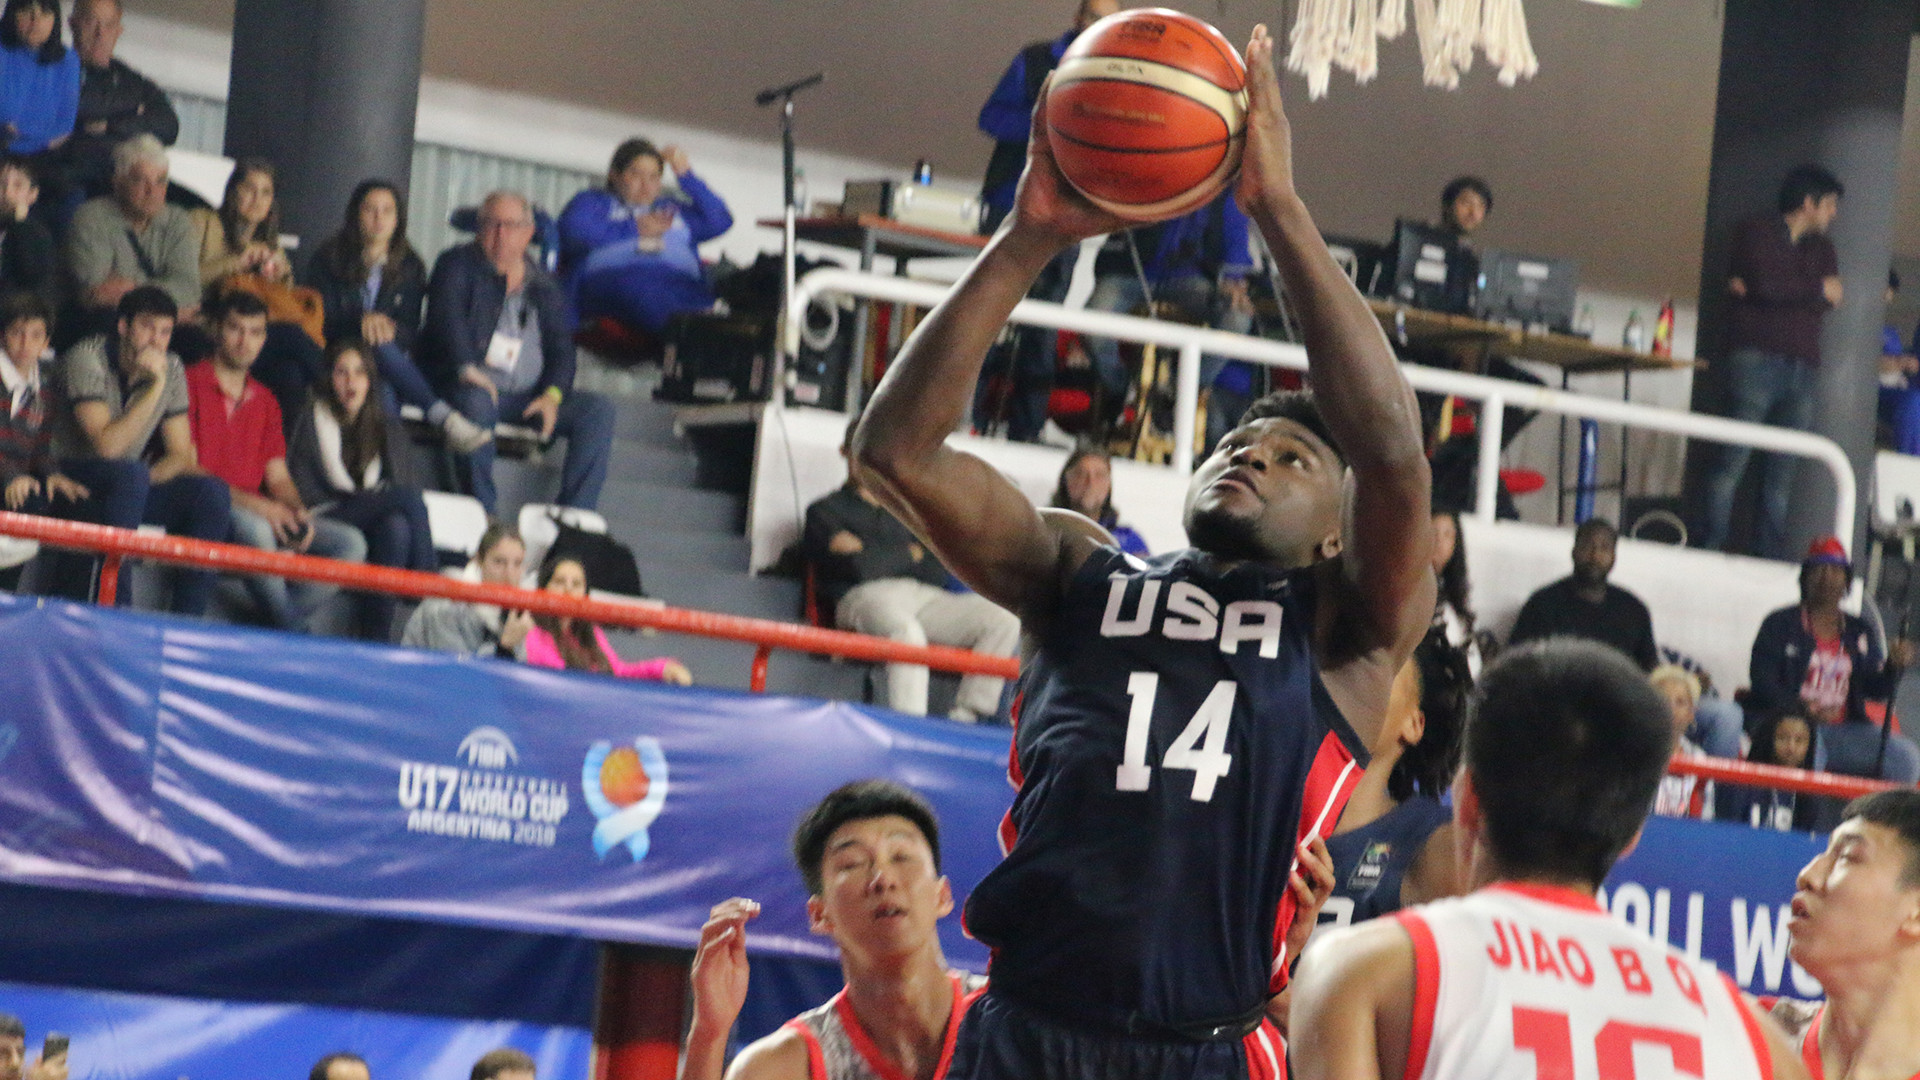 United States thrash China on opening day of FIBA Under-17 World Cup